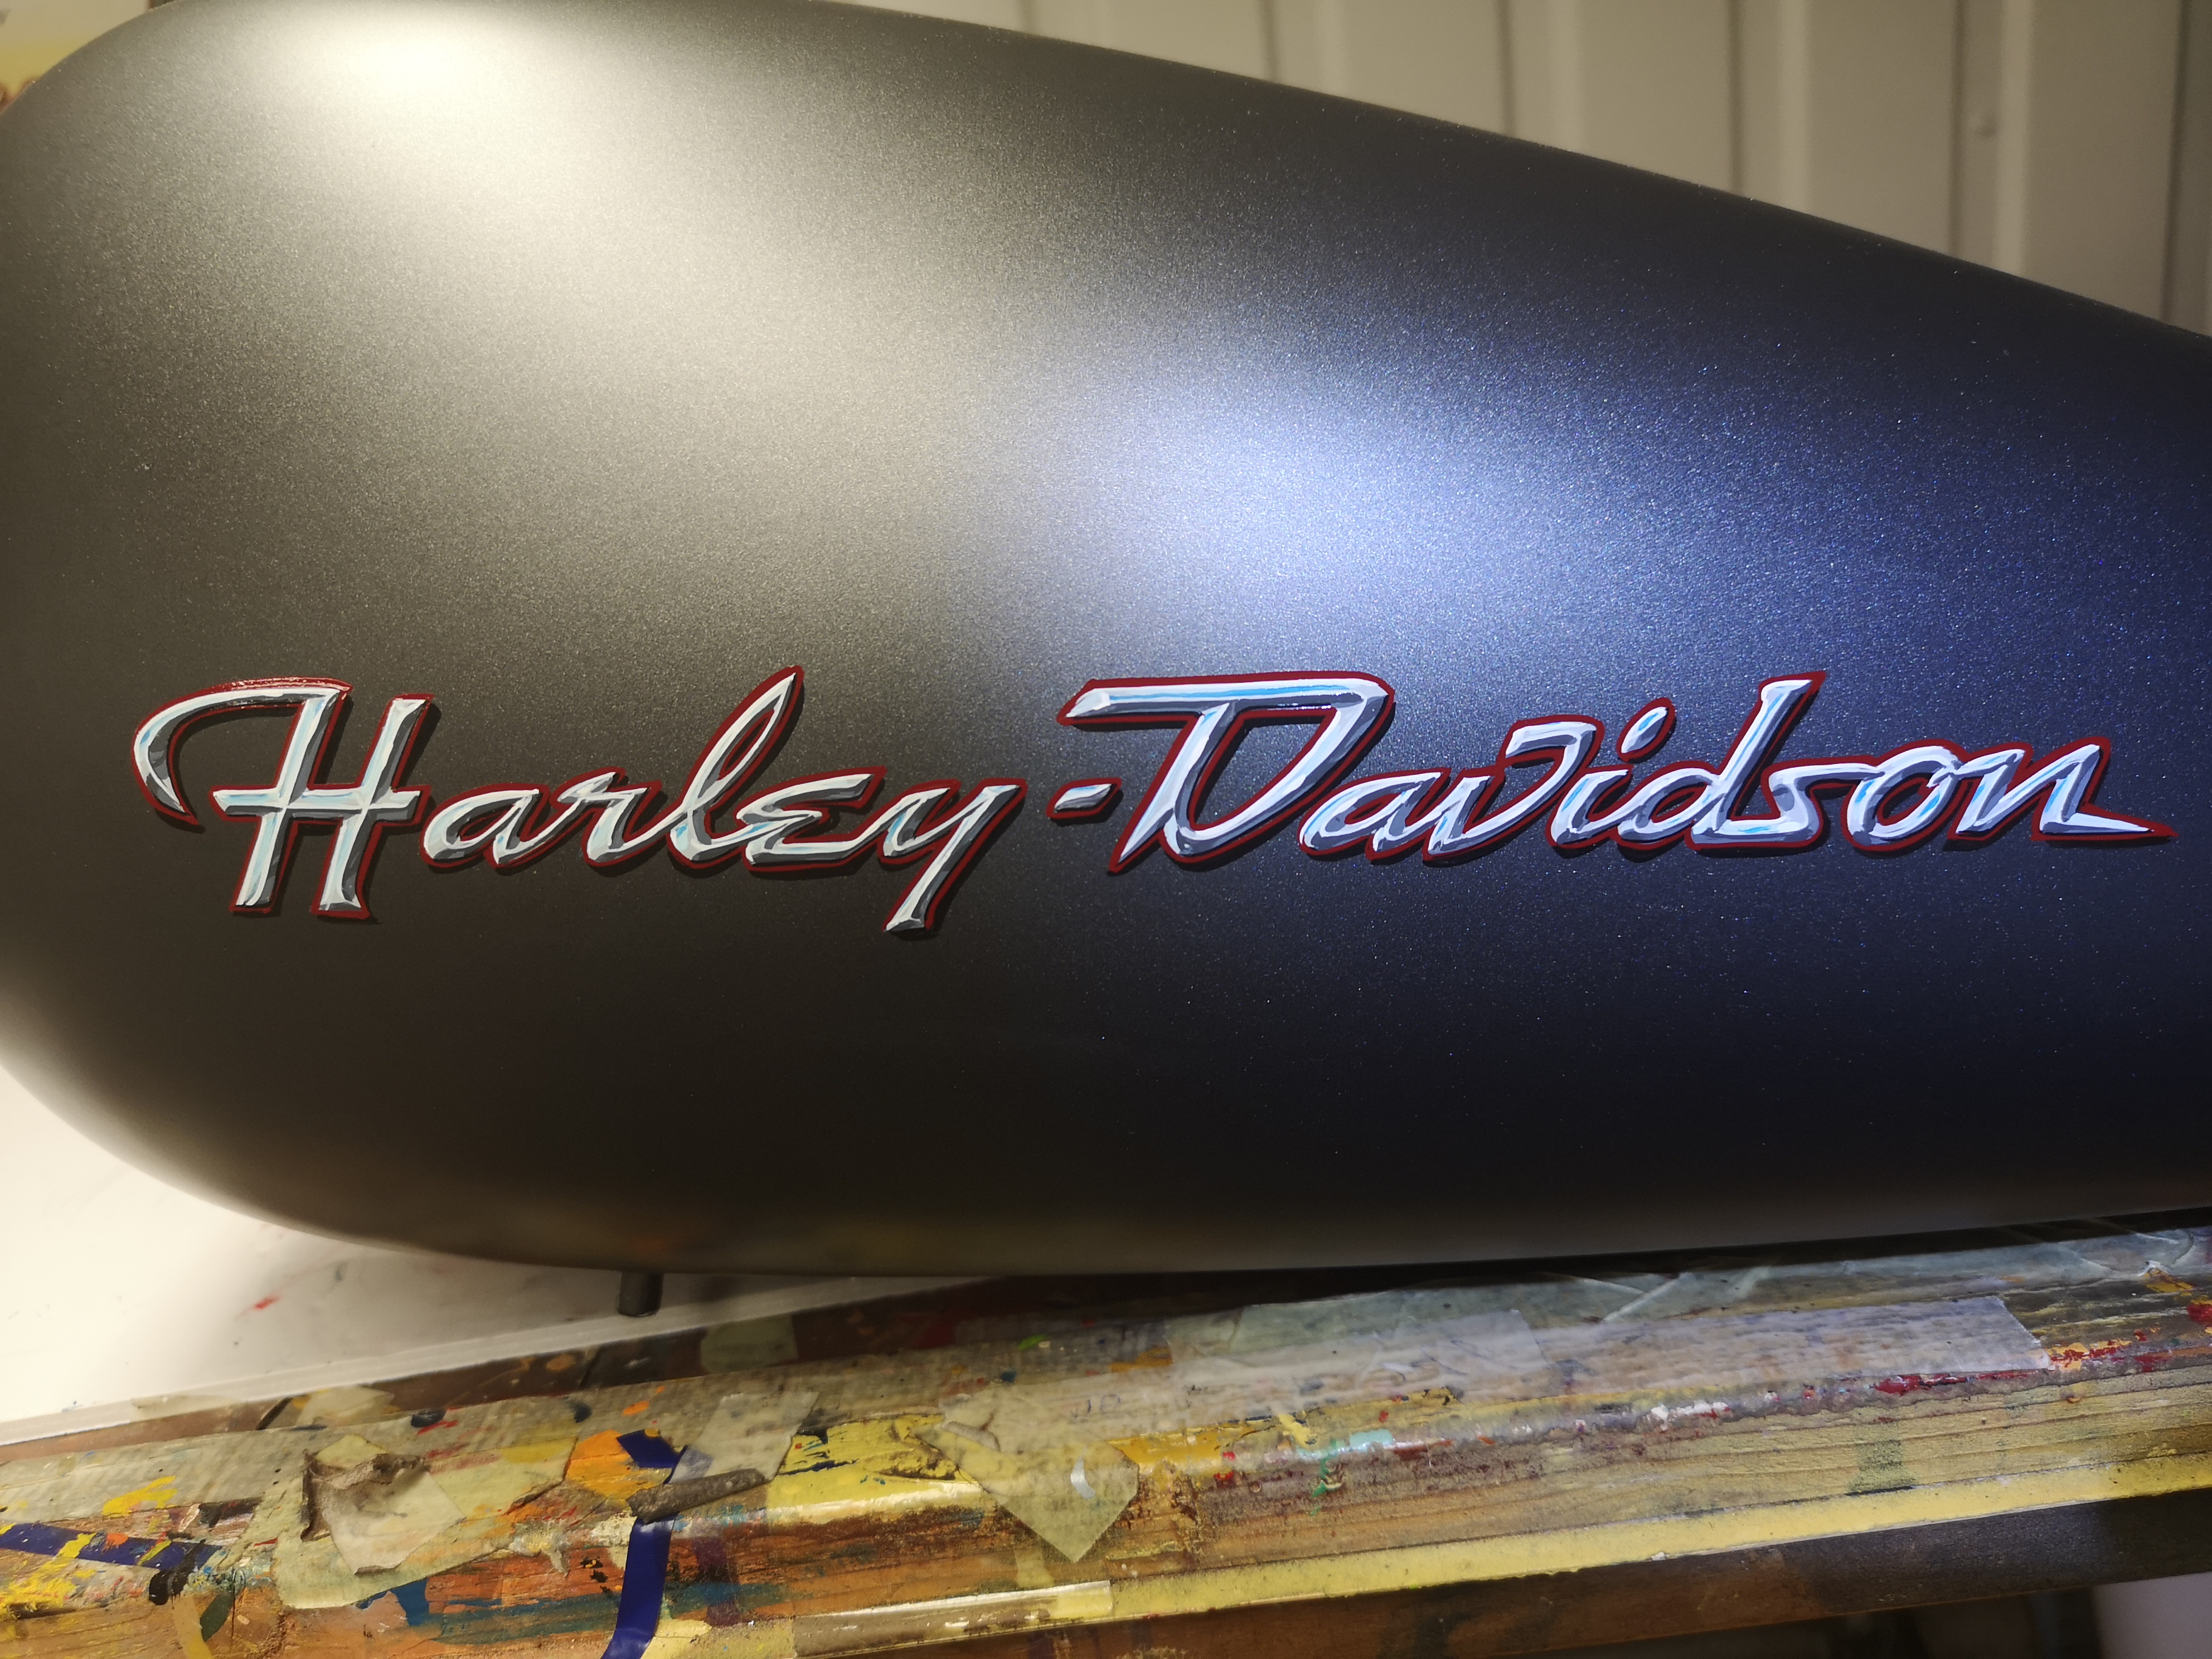 Chrome lettering on Harley tank